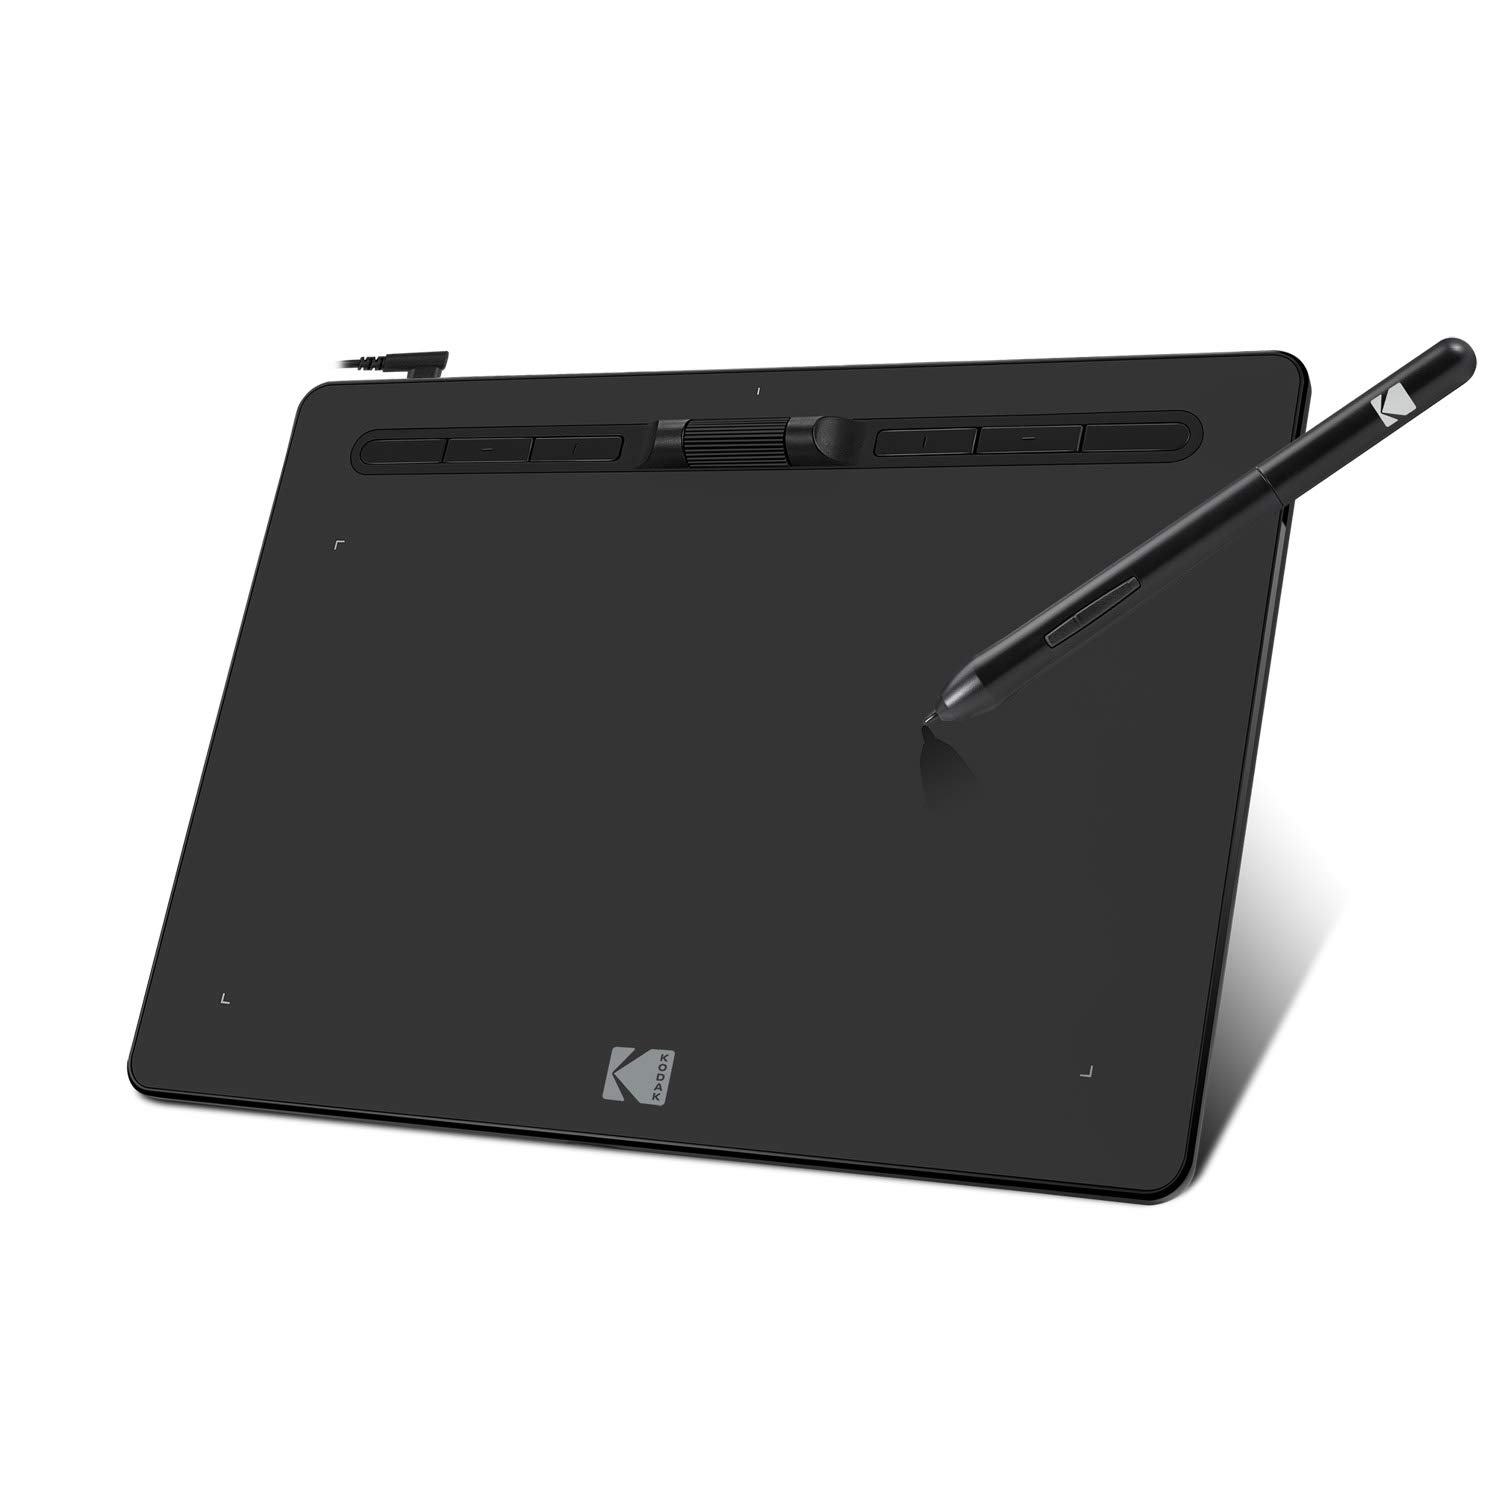 Adesso Kodak CyberTablet F10 Widescreen 10x6 Graphic Drawing Tablet,Black